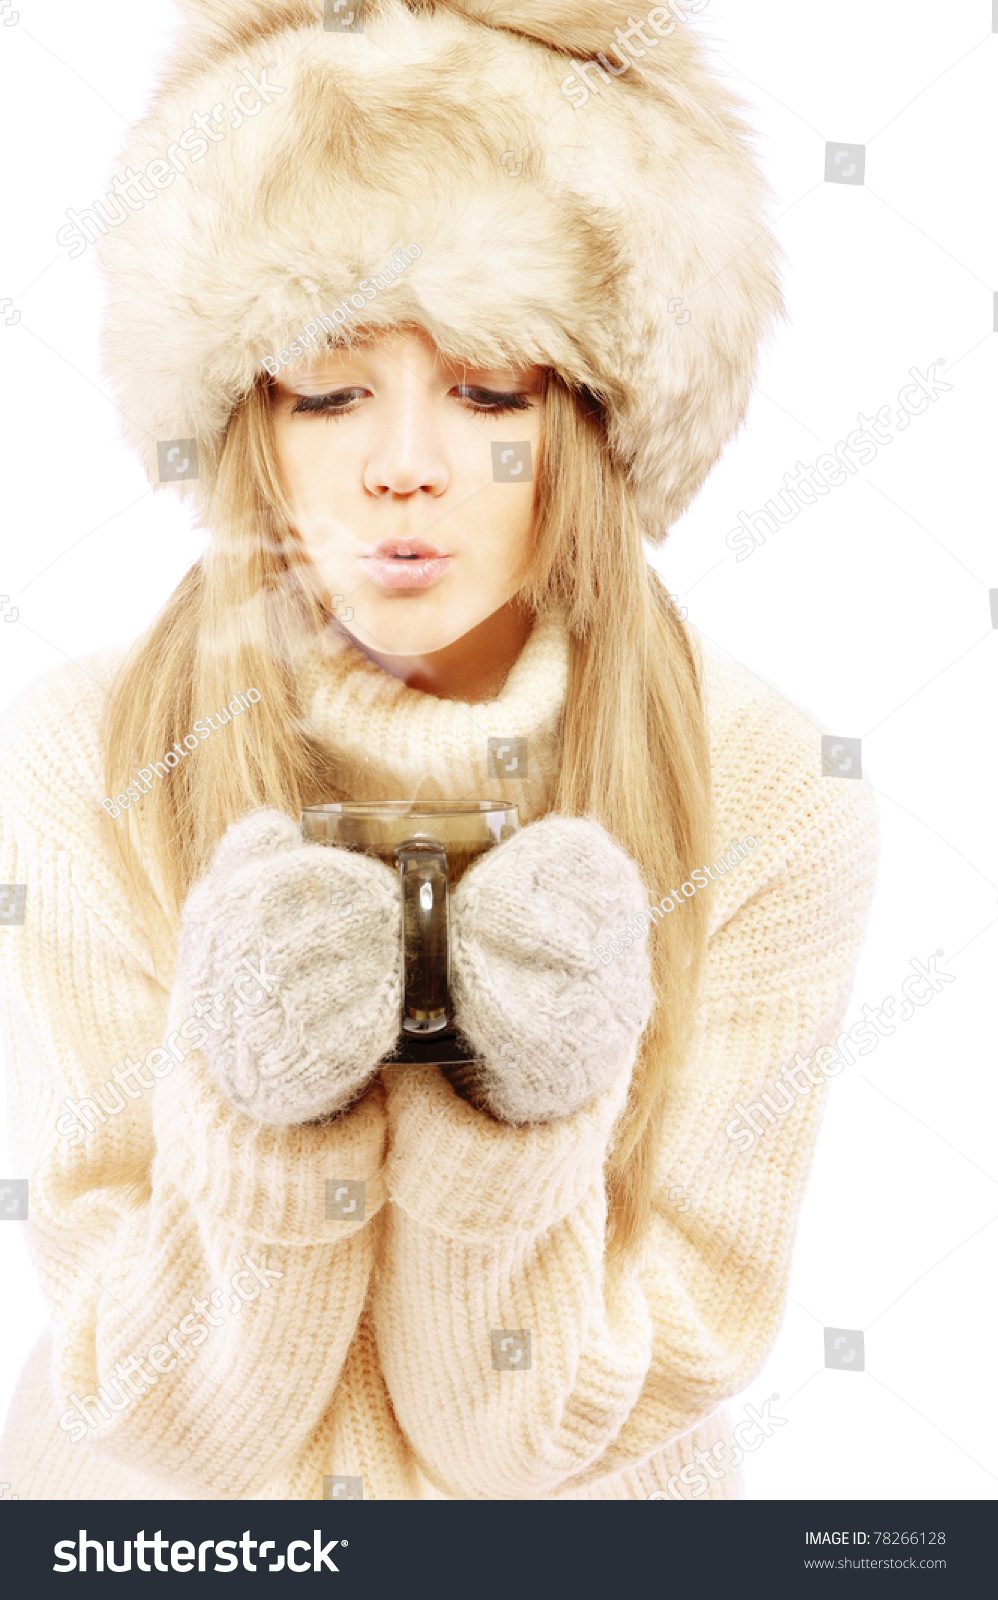 e6d0380444a8 Beautiful young woman in fur cap and sweater blows on hot tea ...